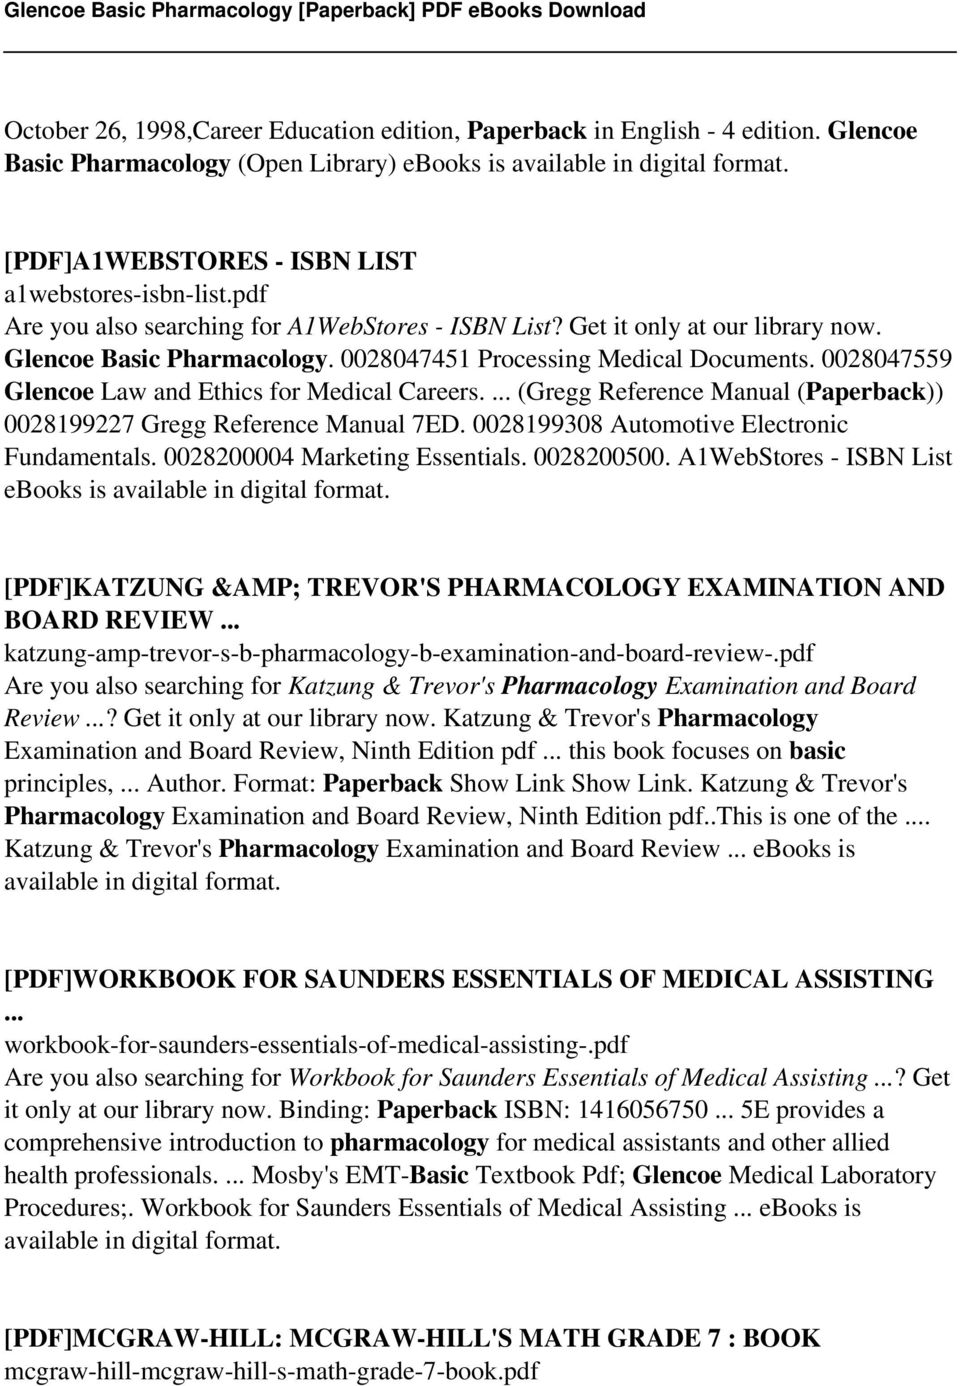 0028047451 Processing Medical Documents. 0028047559 Glencoe Law and Ethics  for Medical Careers.